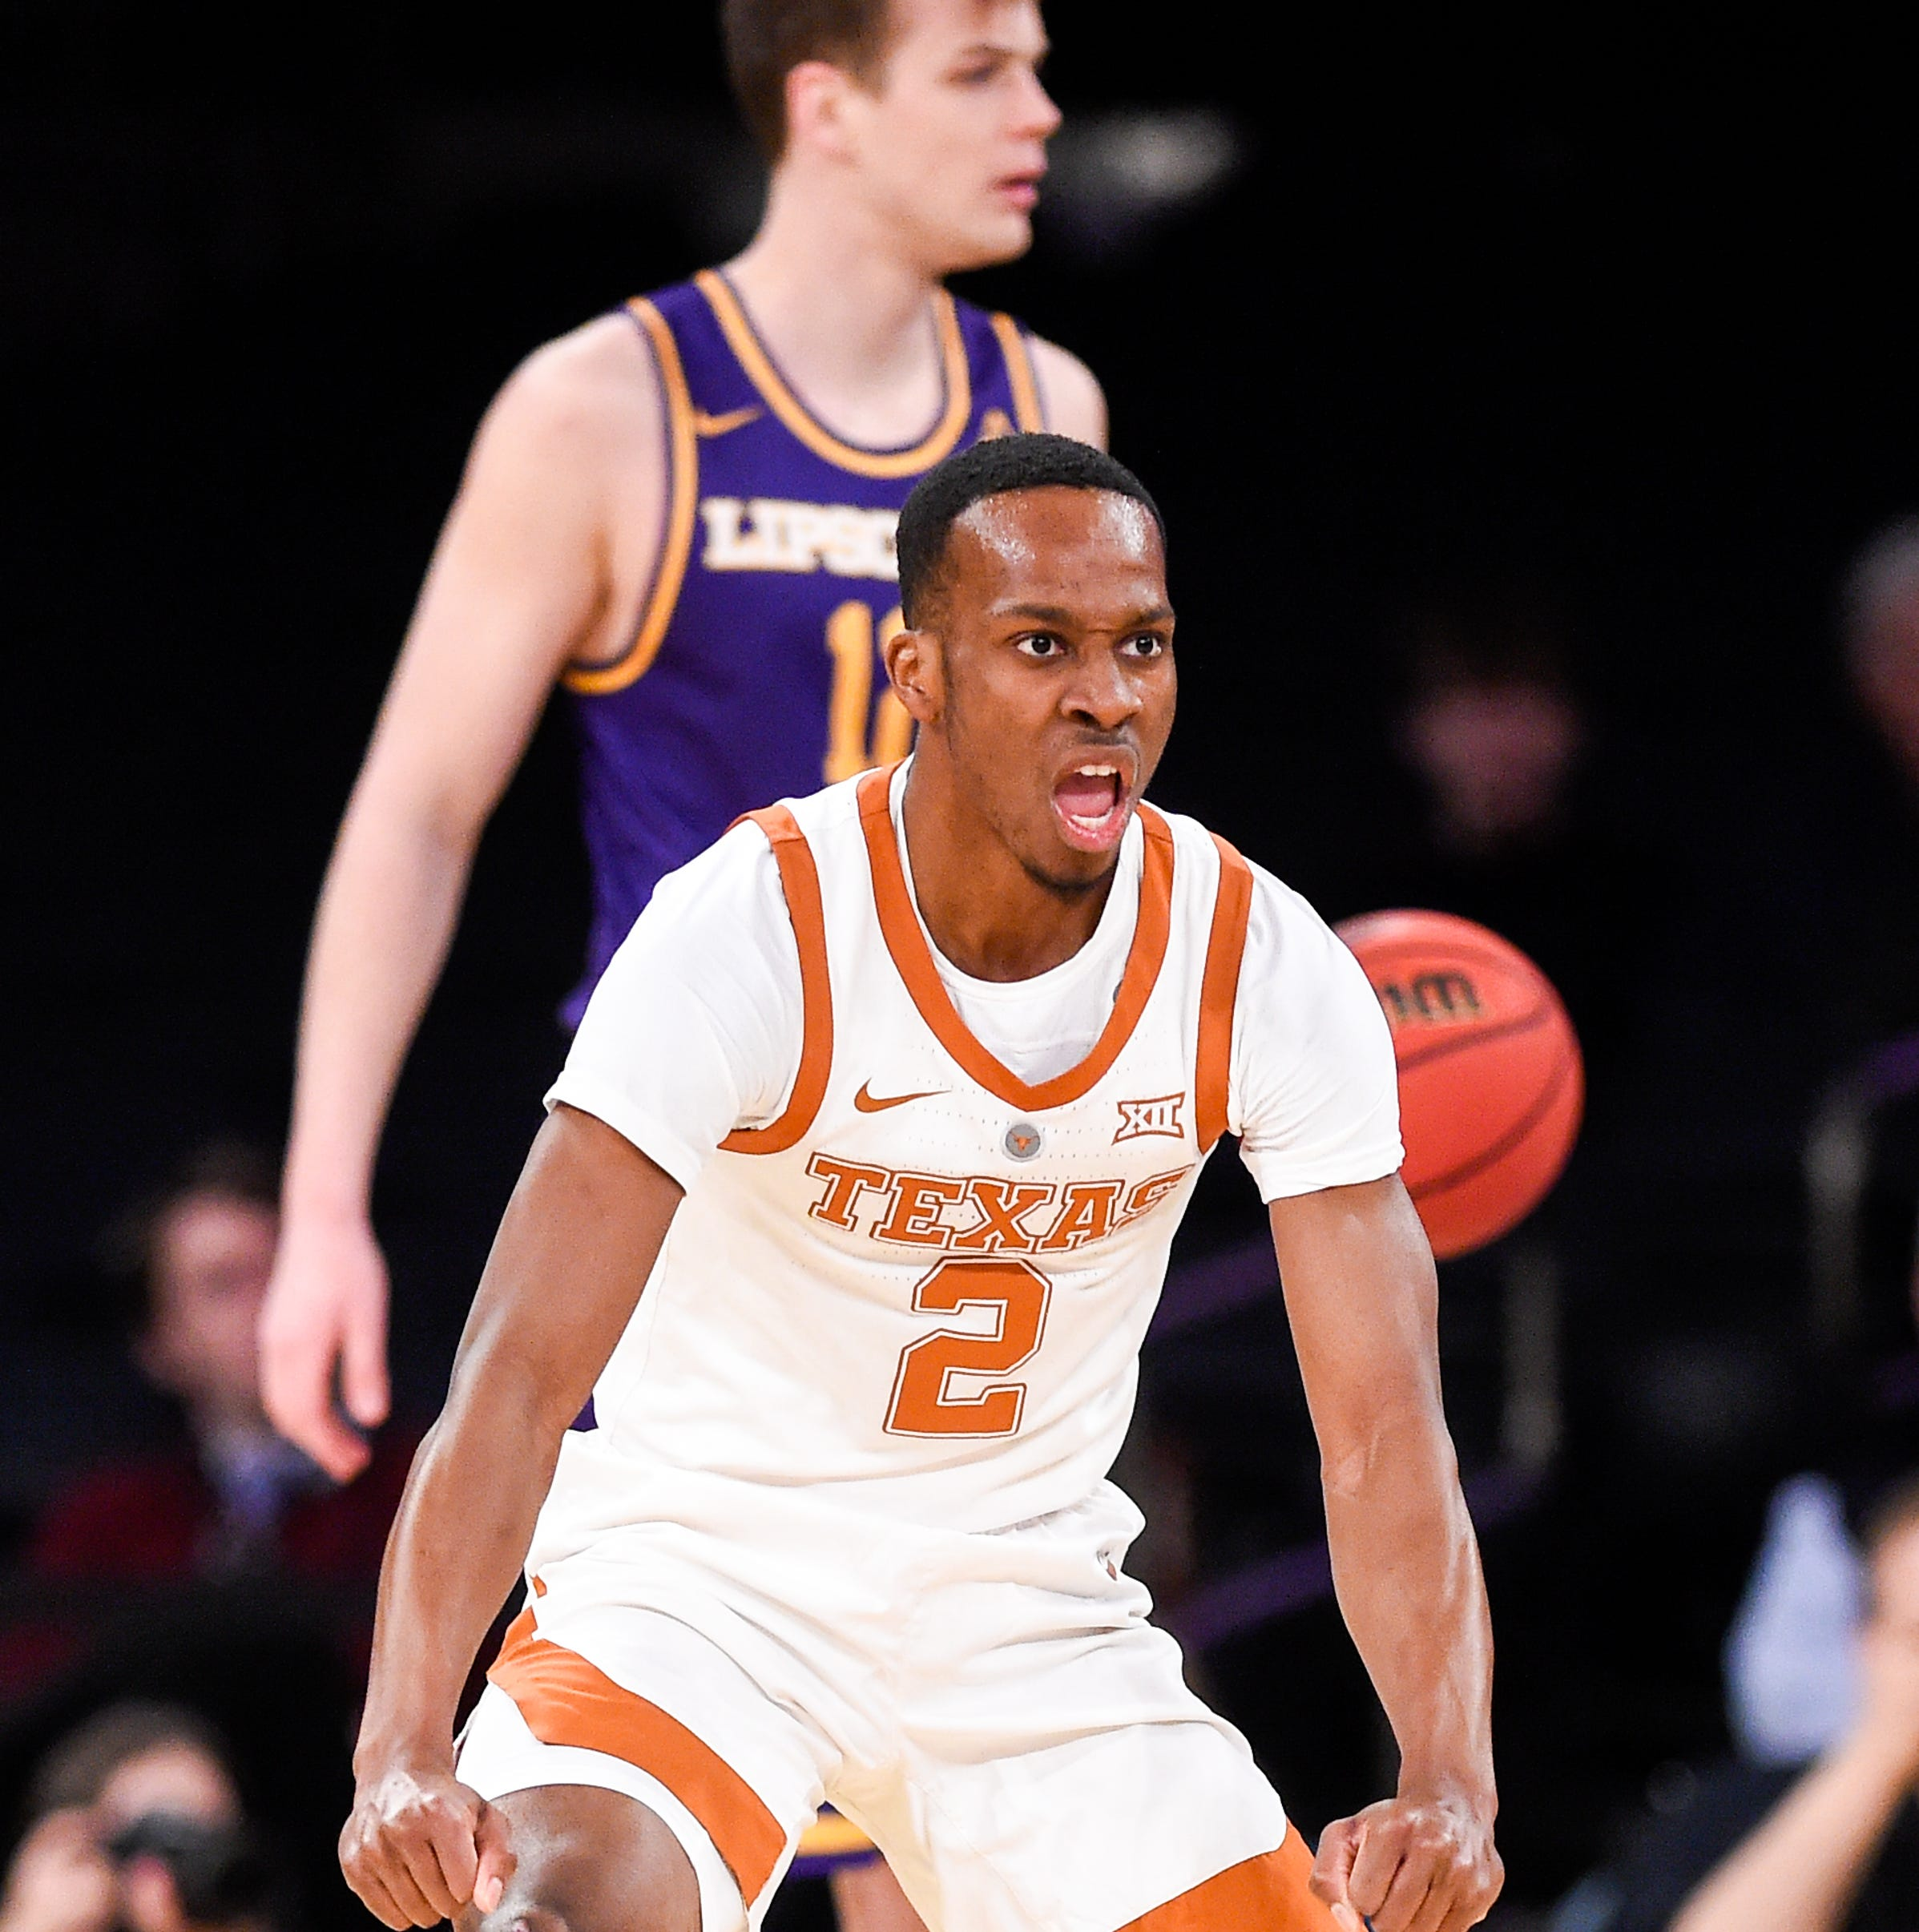 Lipscomb's run in the NIT ends with loss to Texas in championship game